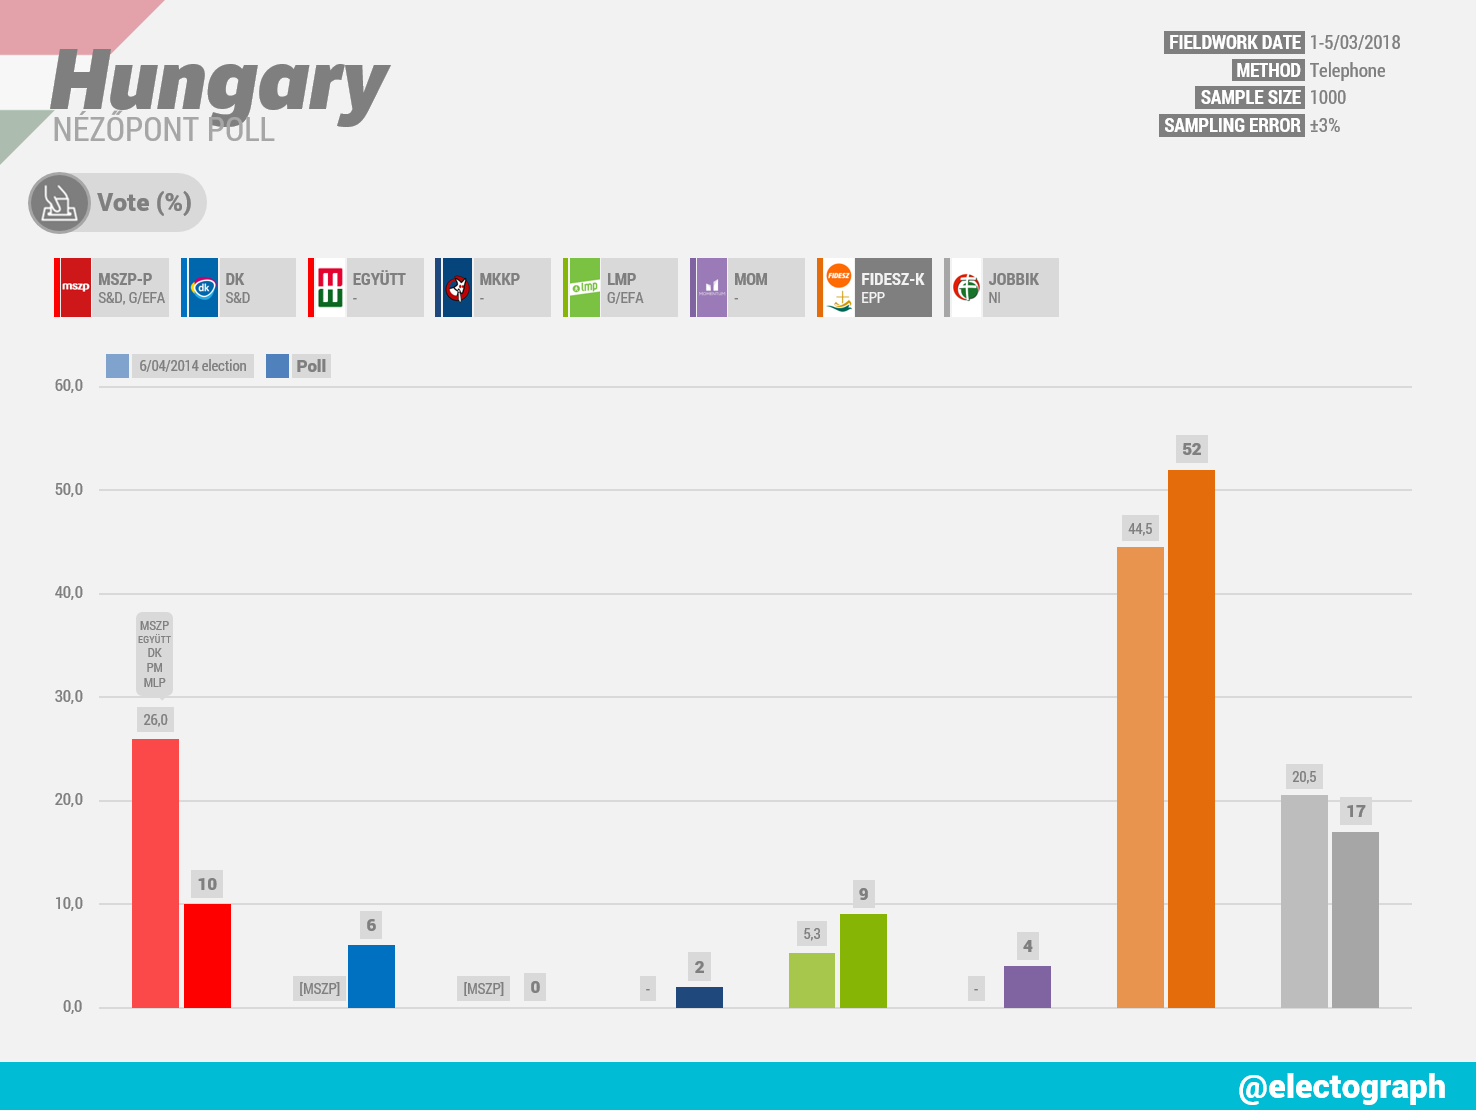 HUNGARY Nézőpont poll, March 2018